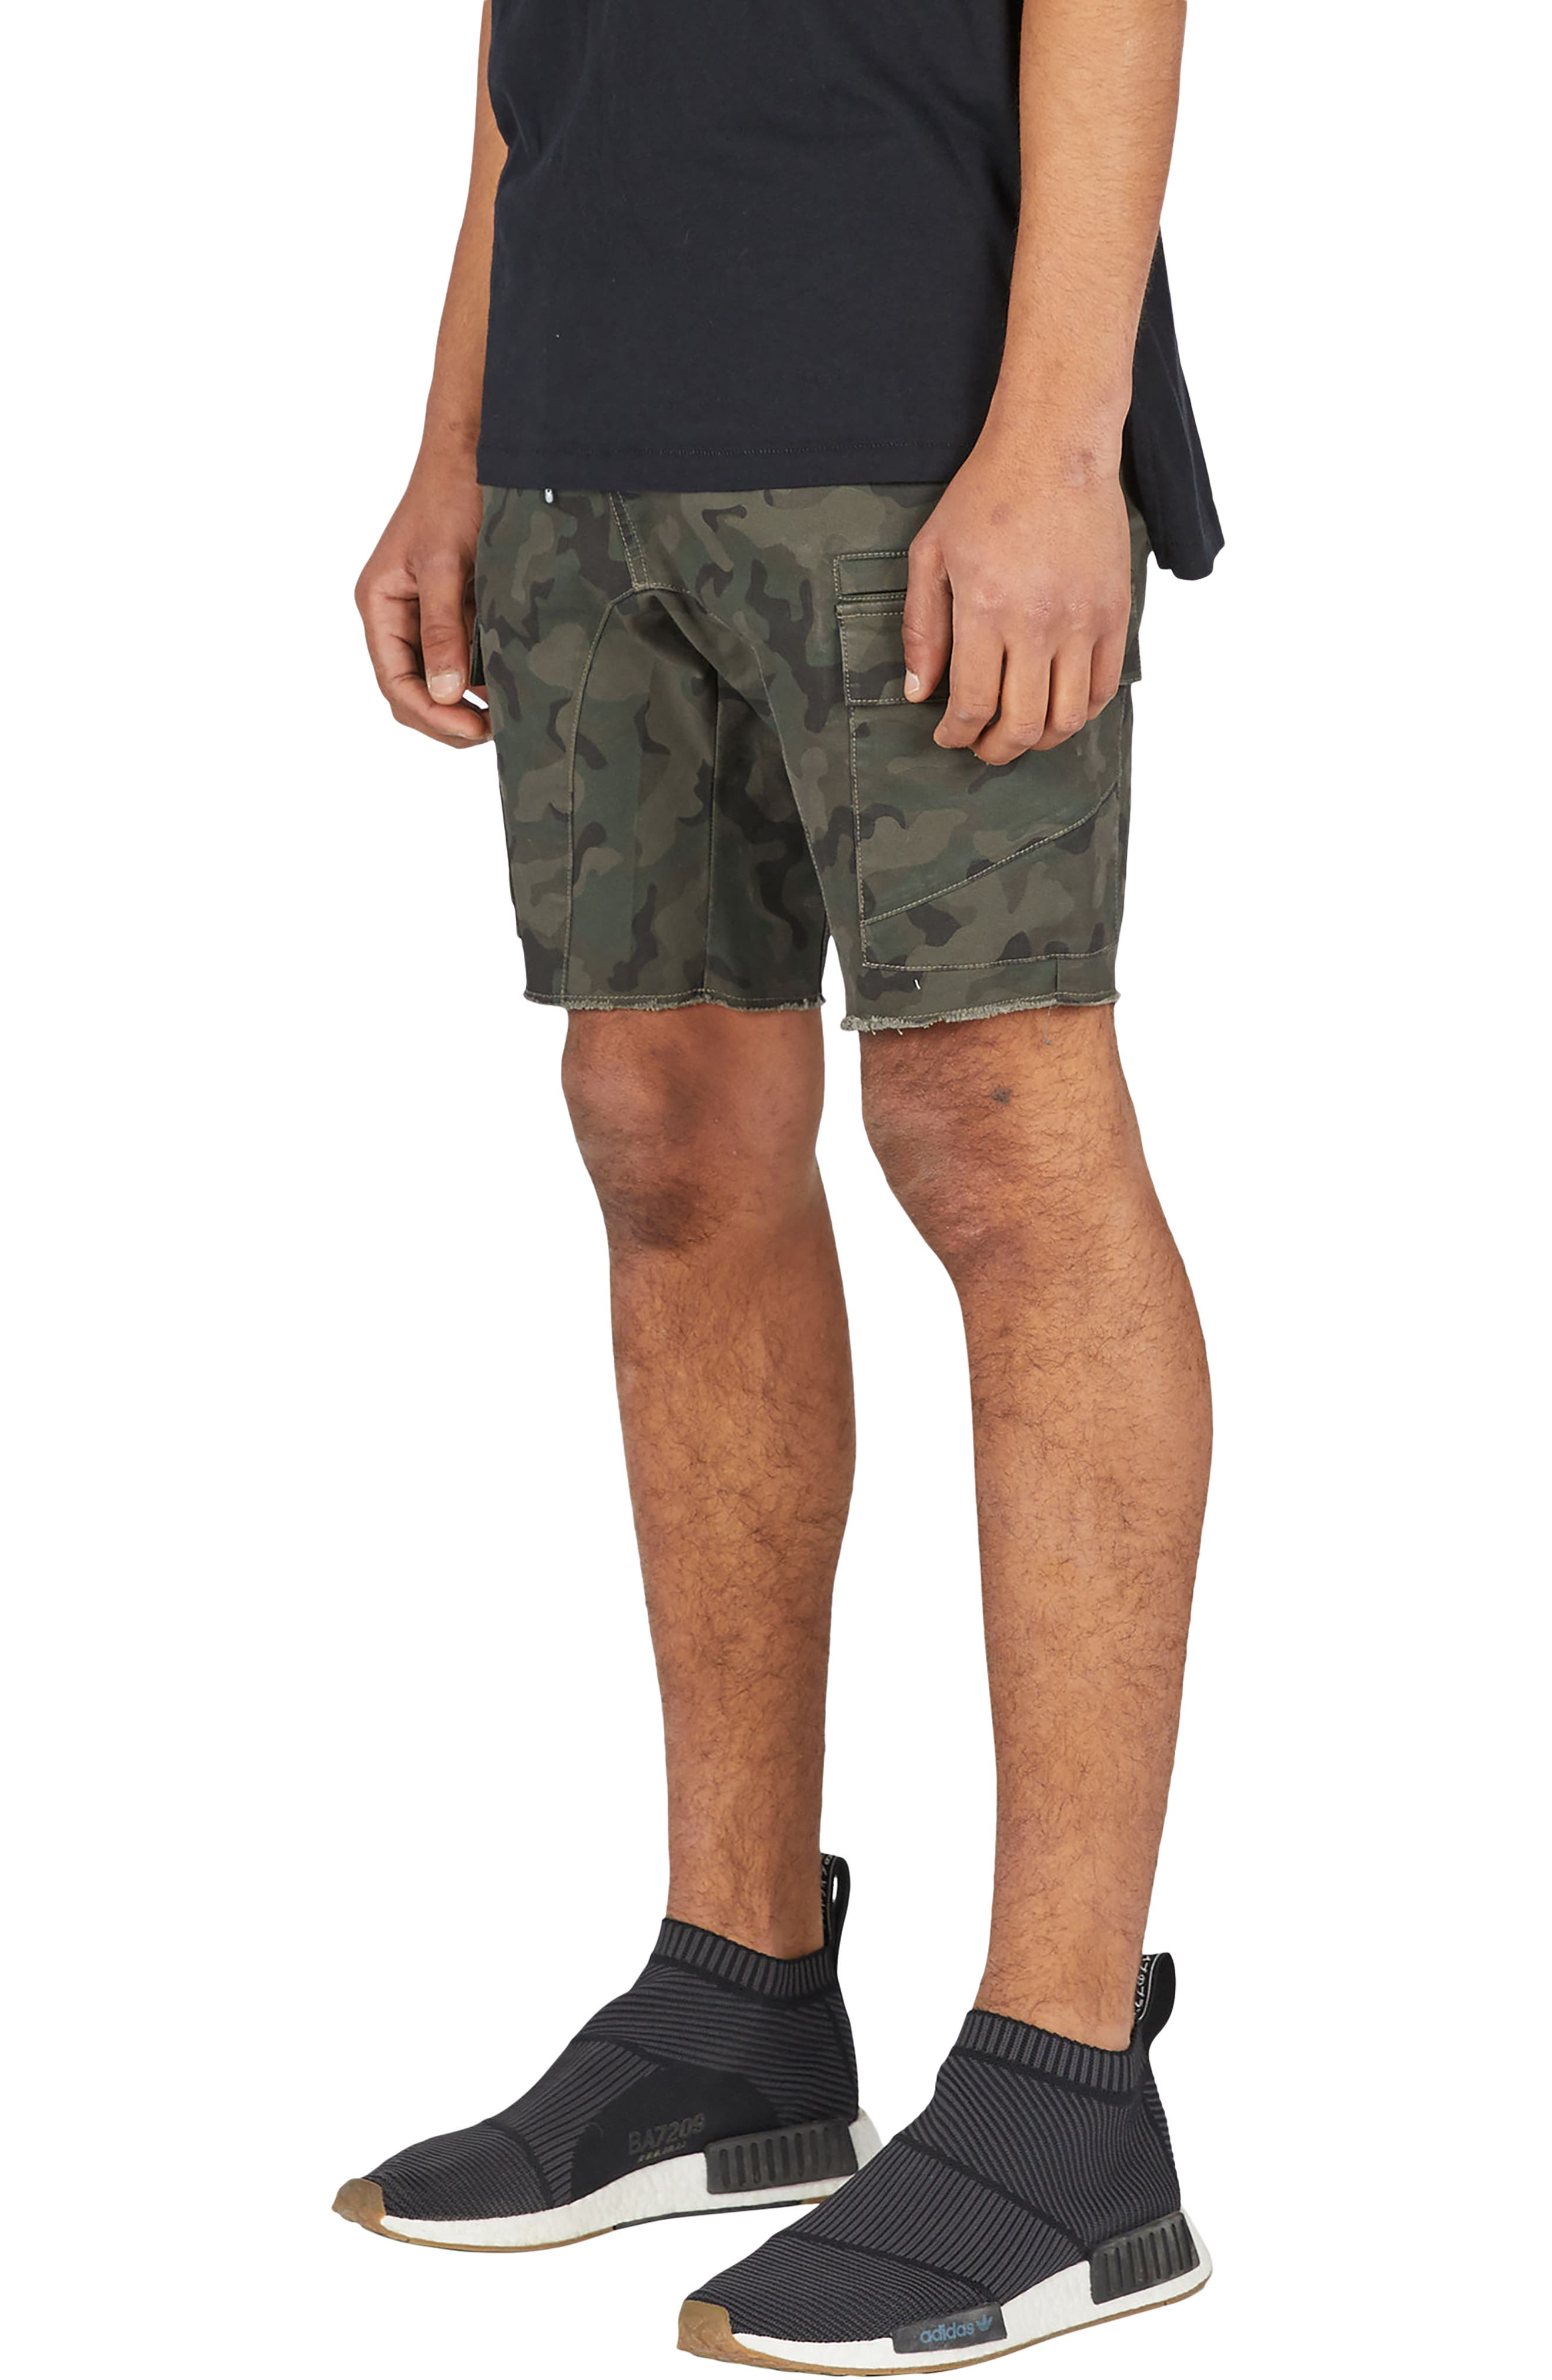 Sureshot Camo Cargo Shorts,                             Alternate thumbnail 6, color,                             302